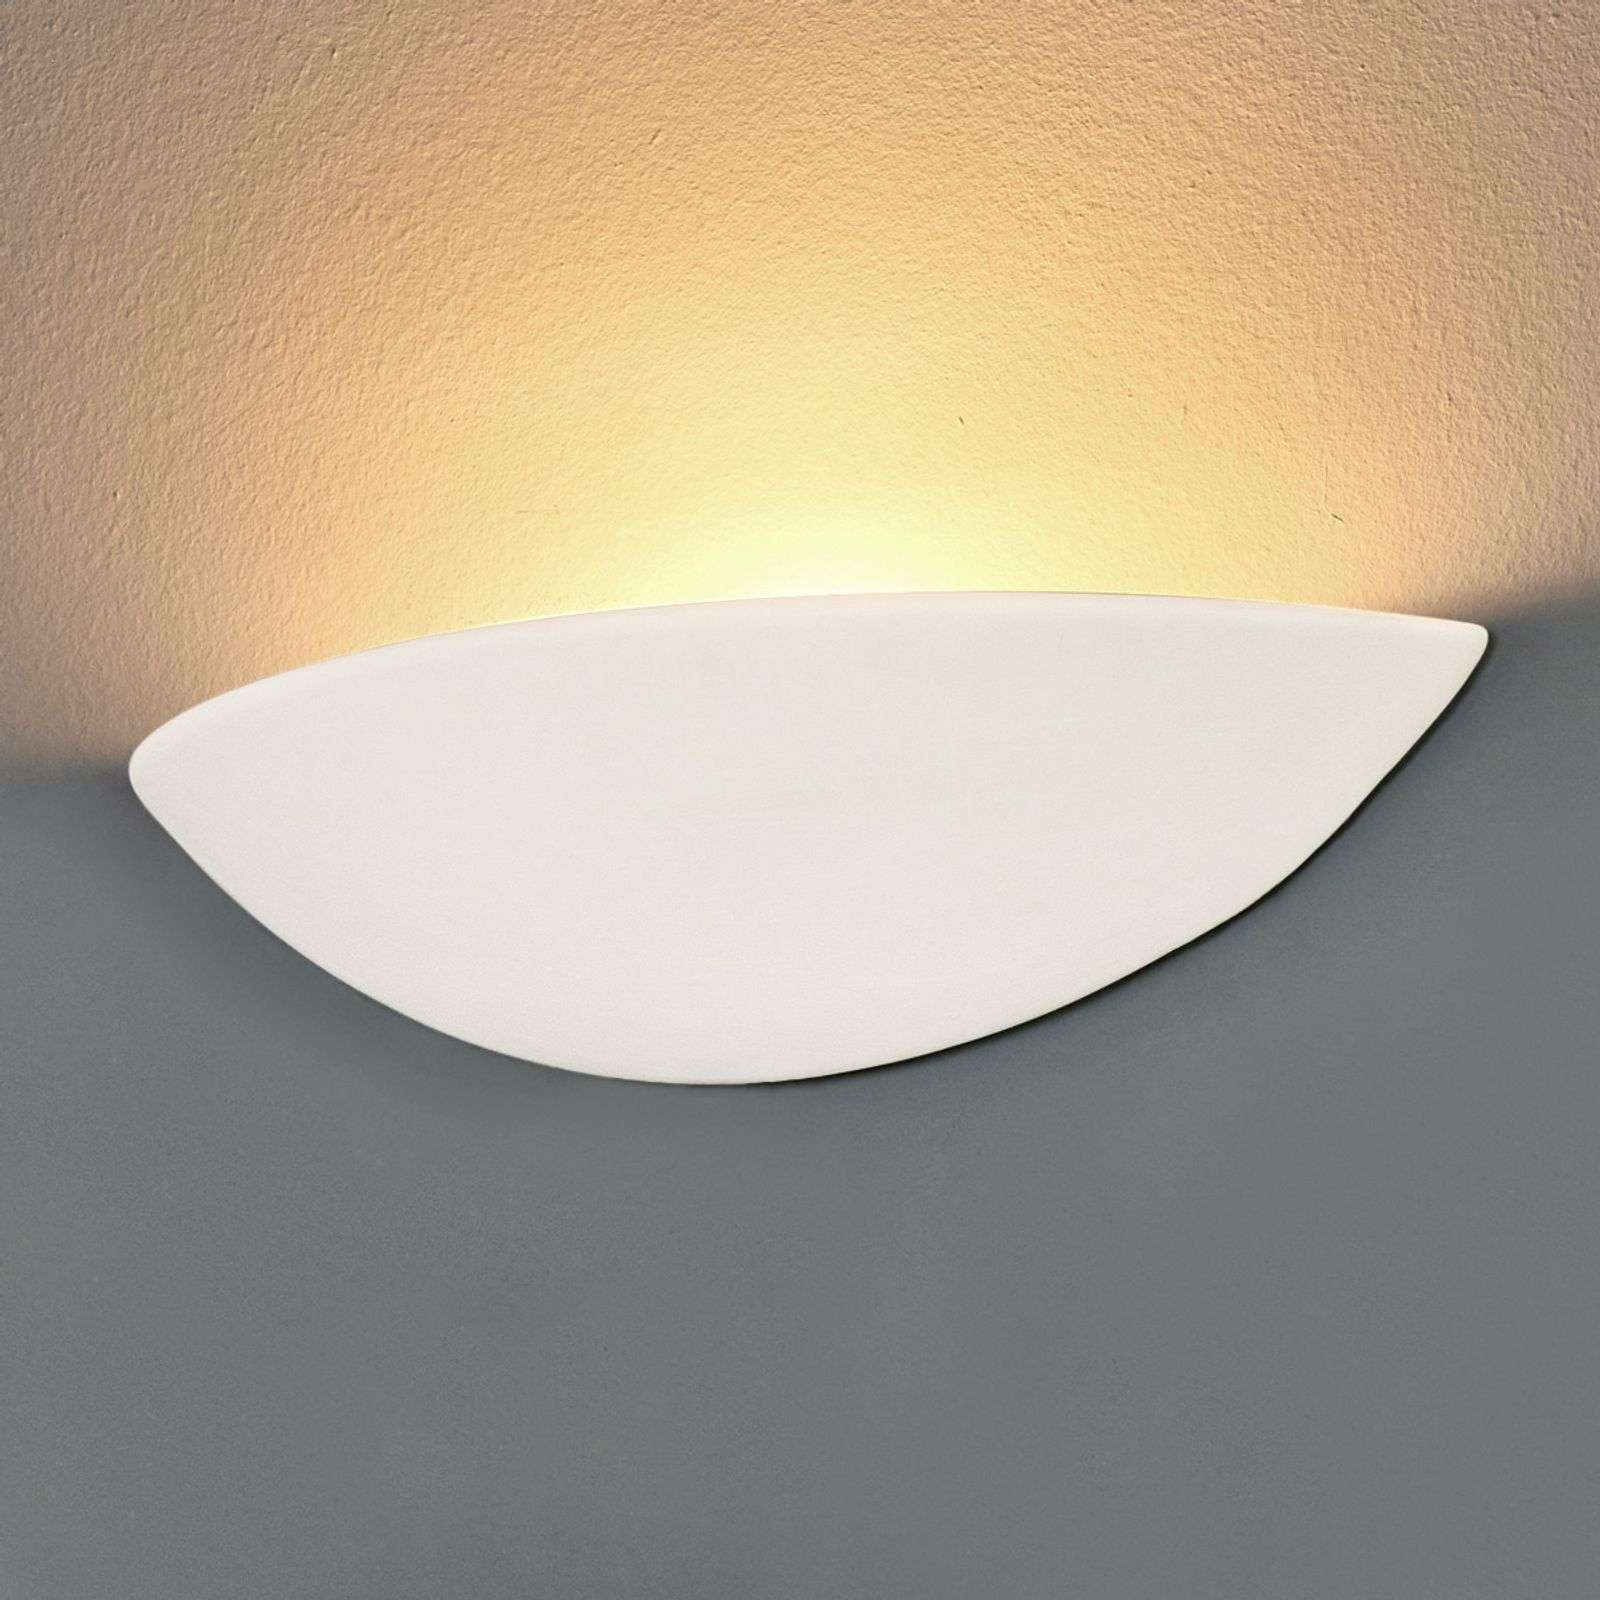 Applique LED in gesso PALE, verniciabile